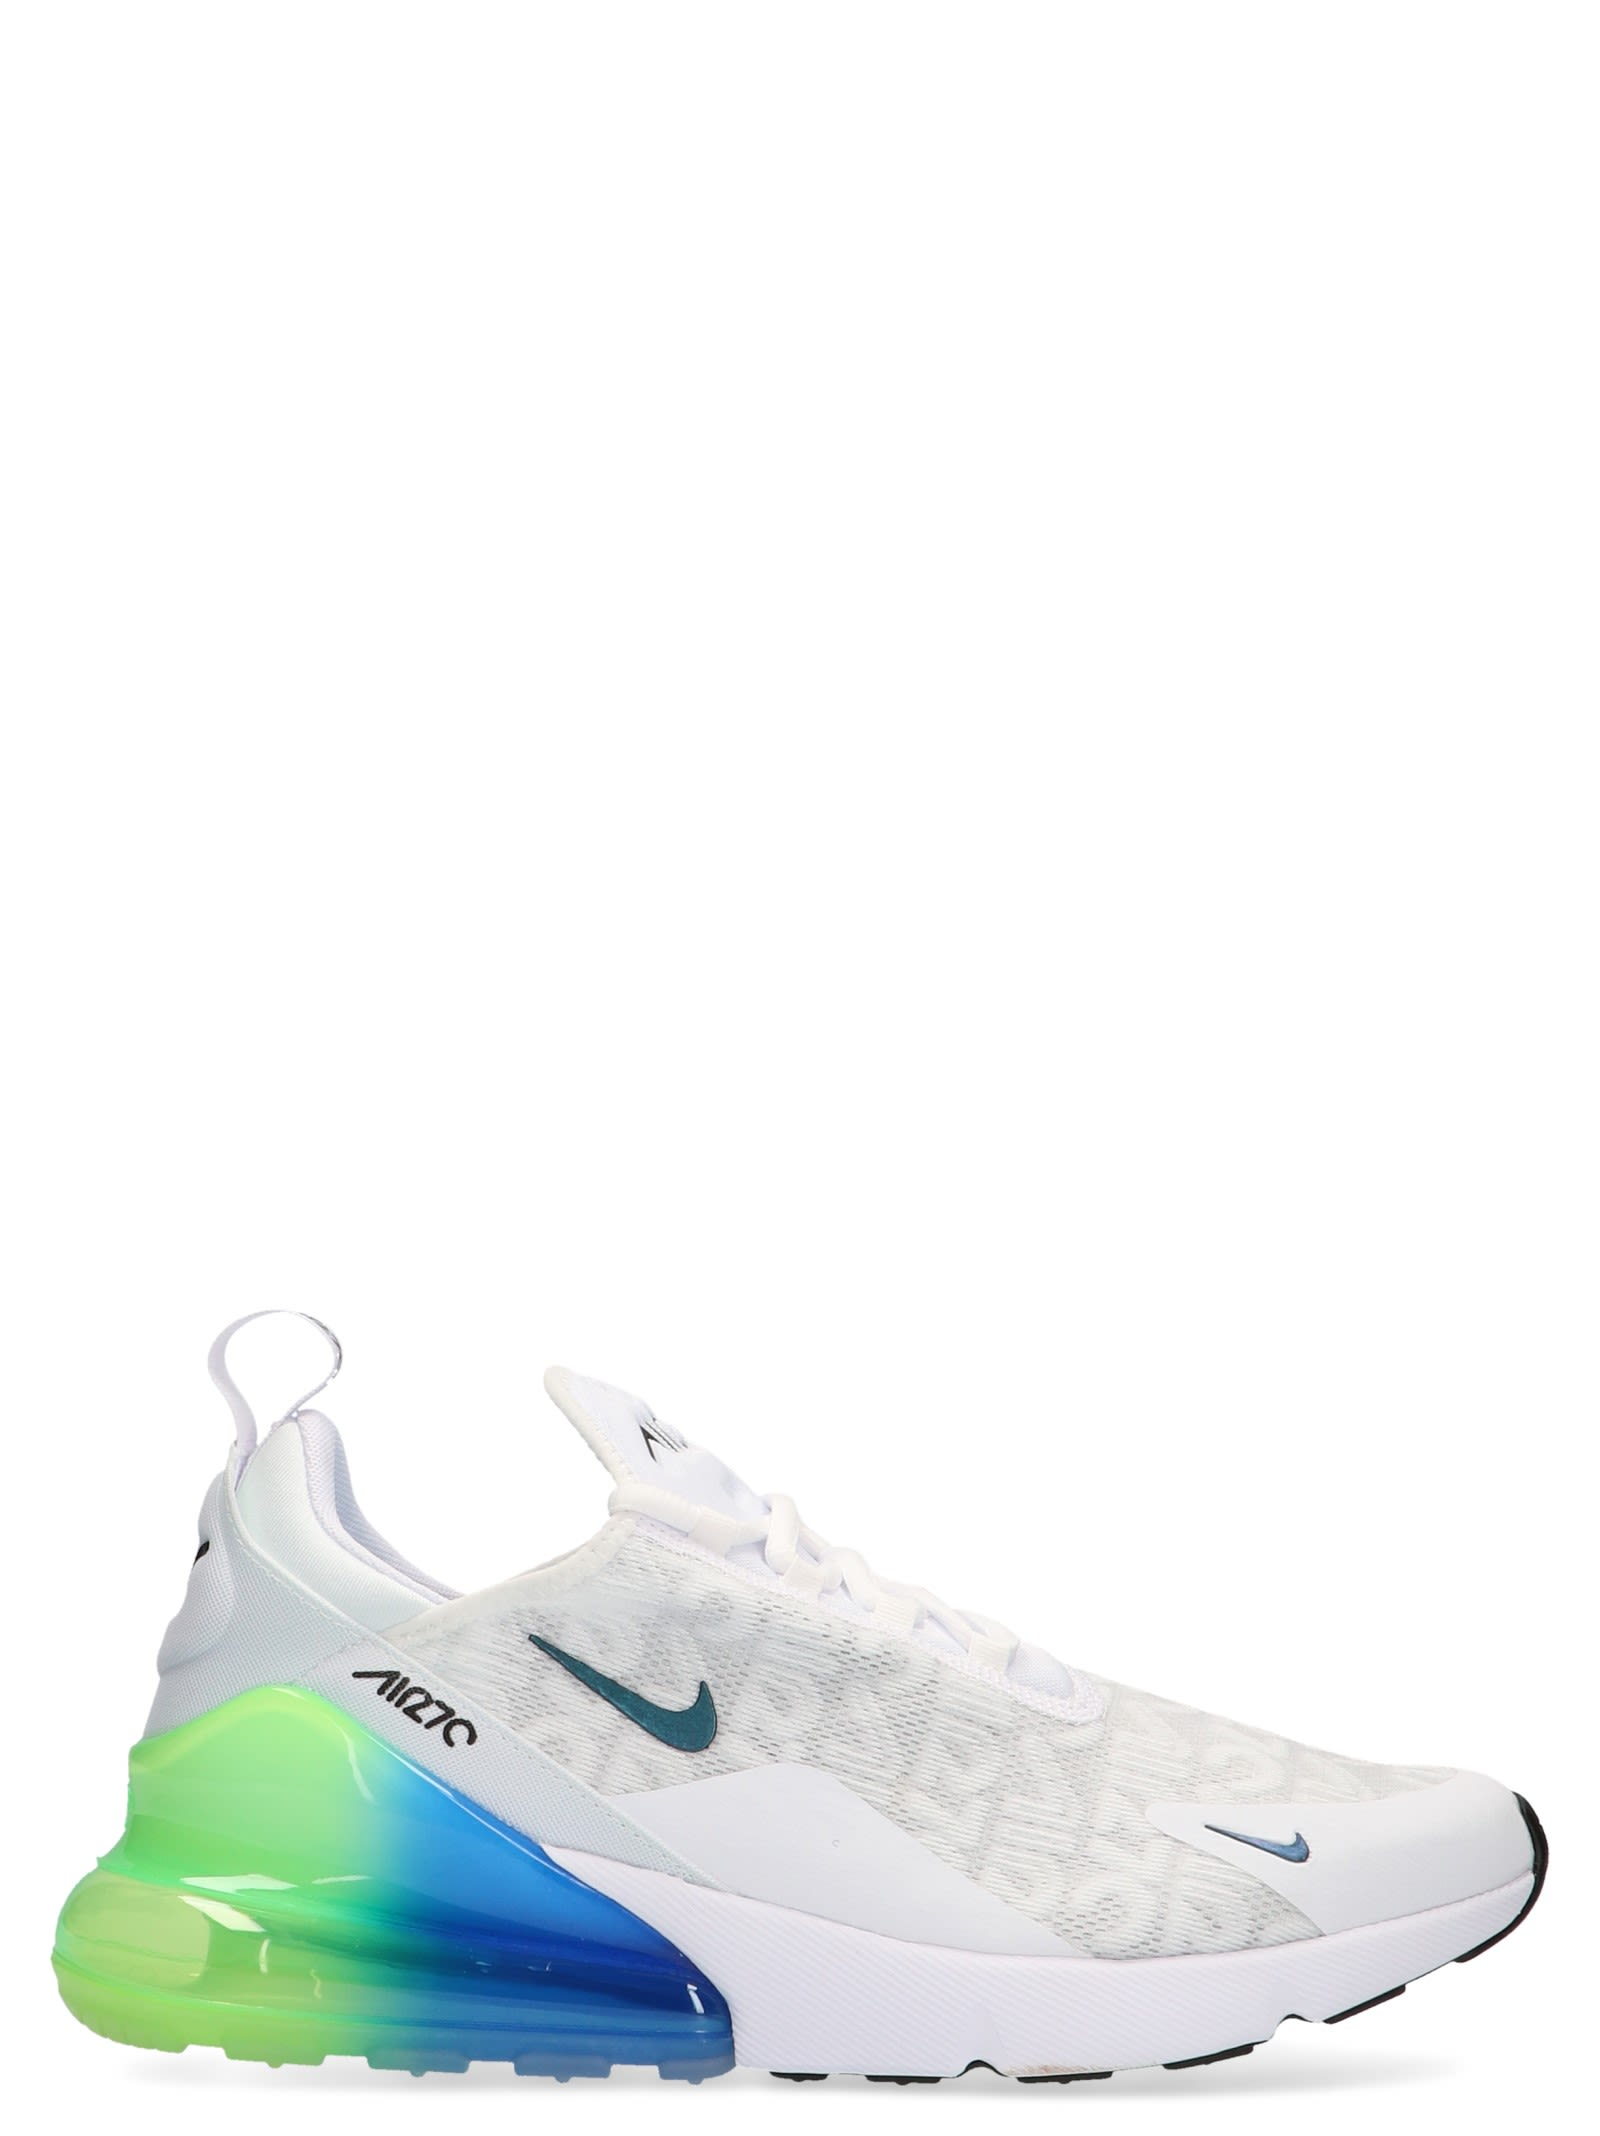 best authentic 0d15f 60cff Nike  air Max 270 Se  Shoes - White ...